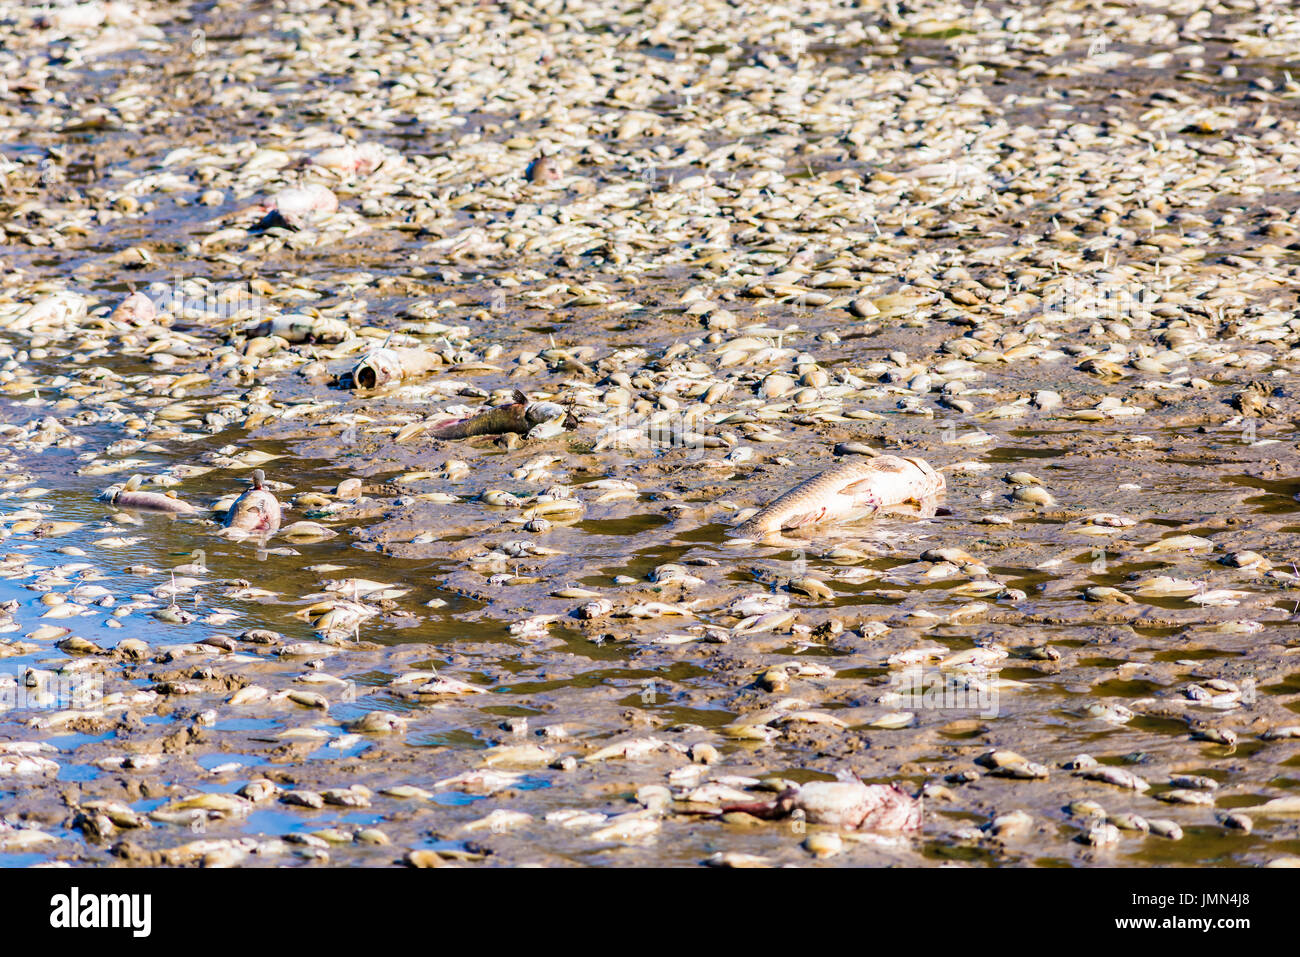 Dead fish after lake drainage and dredging at Royal Lake Park in Fairfax, Virginia - Stock Image